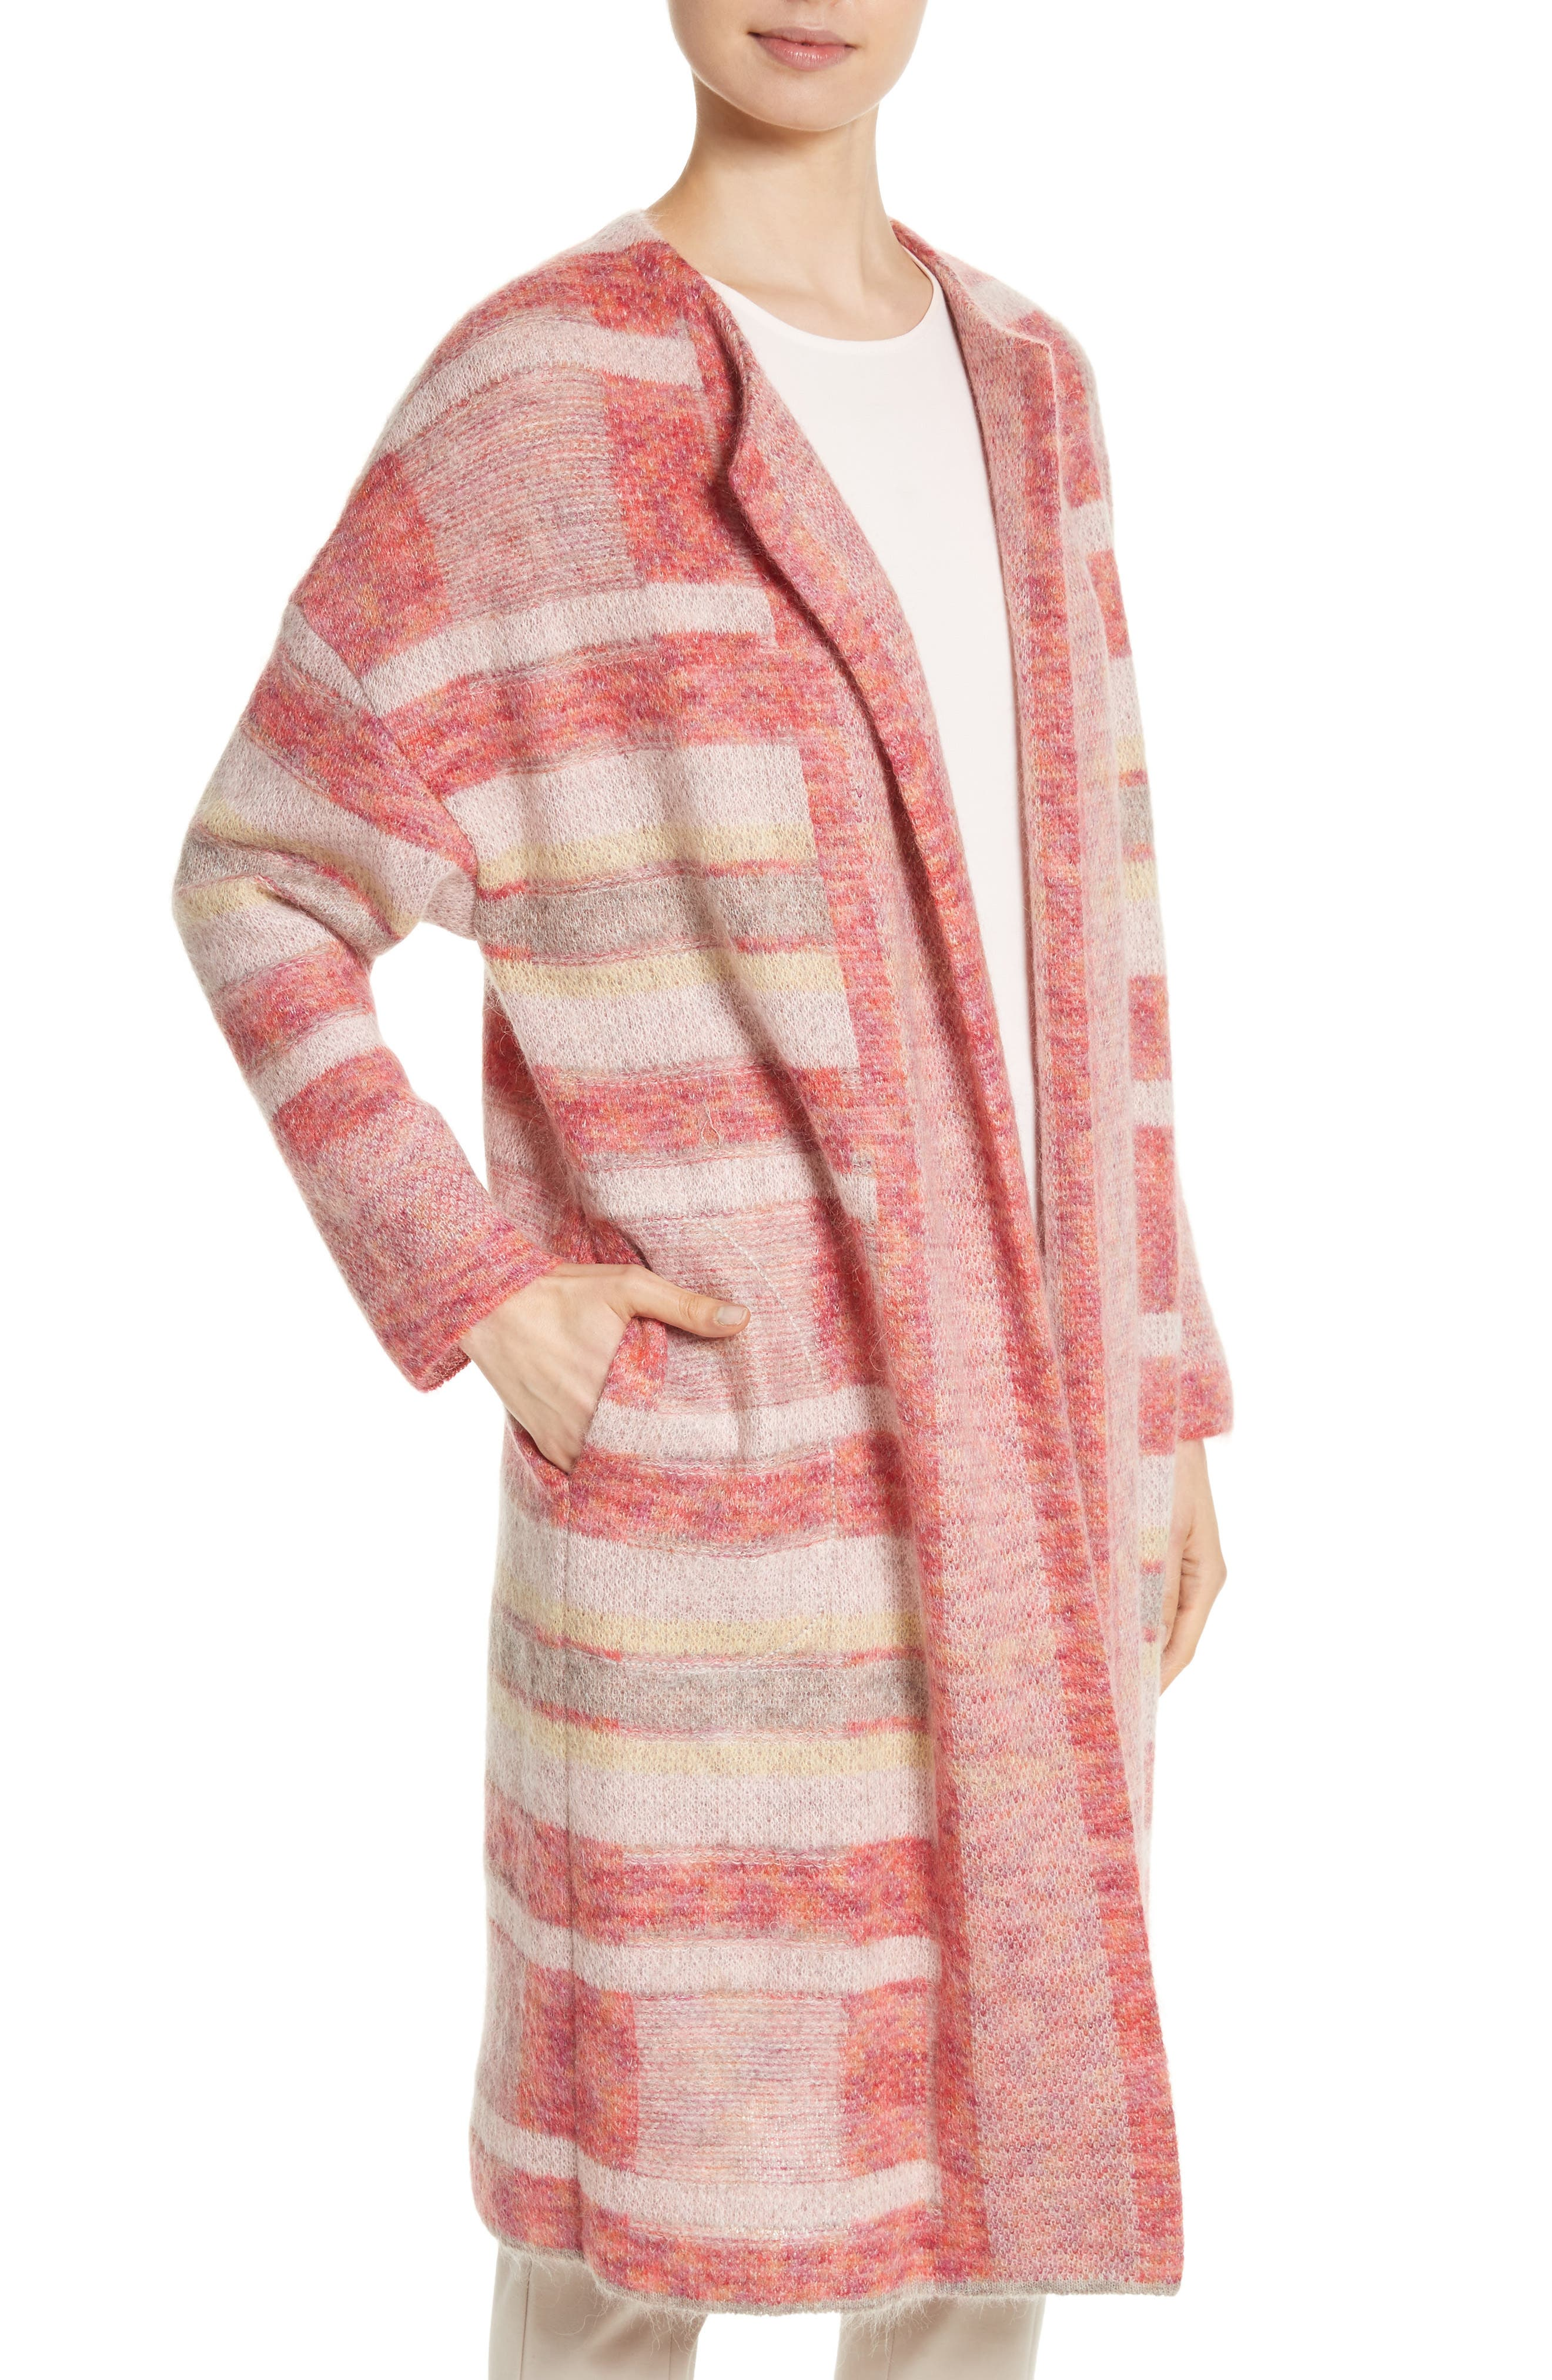 Lofty Knit Plaid Blanket Coat,                             Alternate thumbnail 4, color,                             Bright Coral Multi